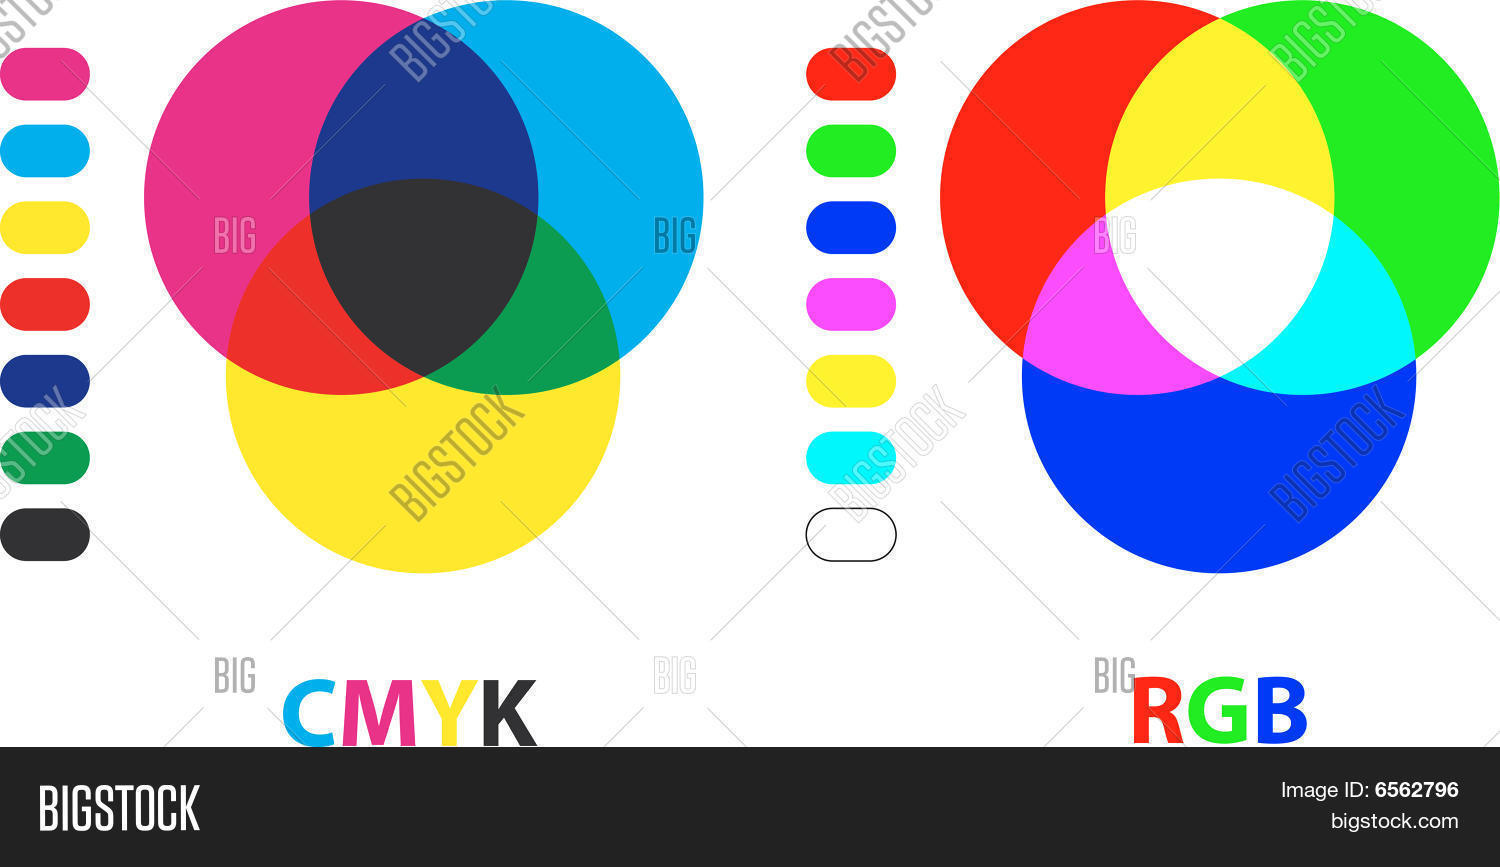 Rgbcmyk Color Charts Vector Photo Free Trial Bigstock